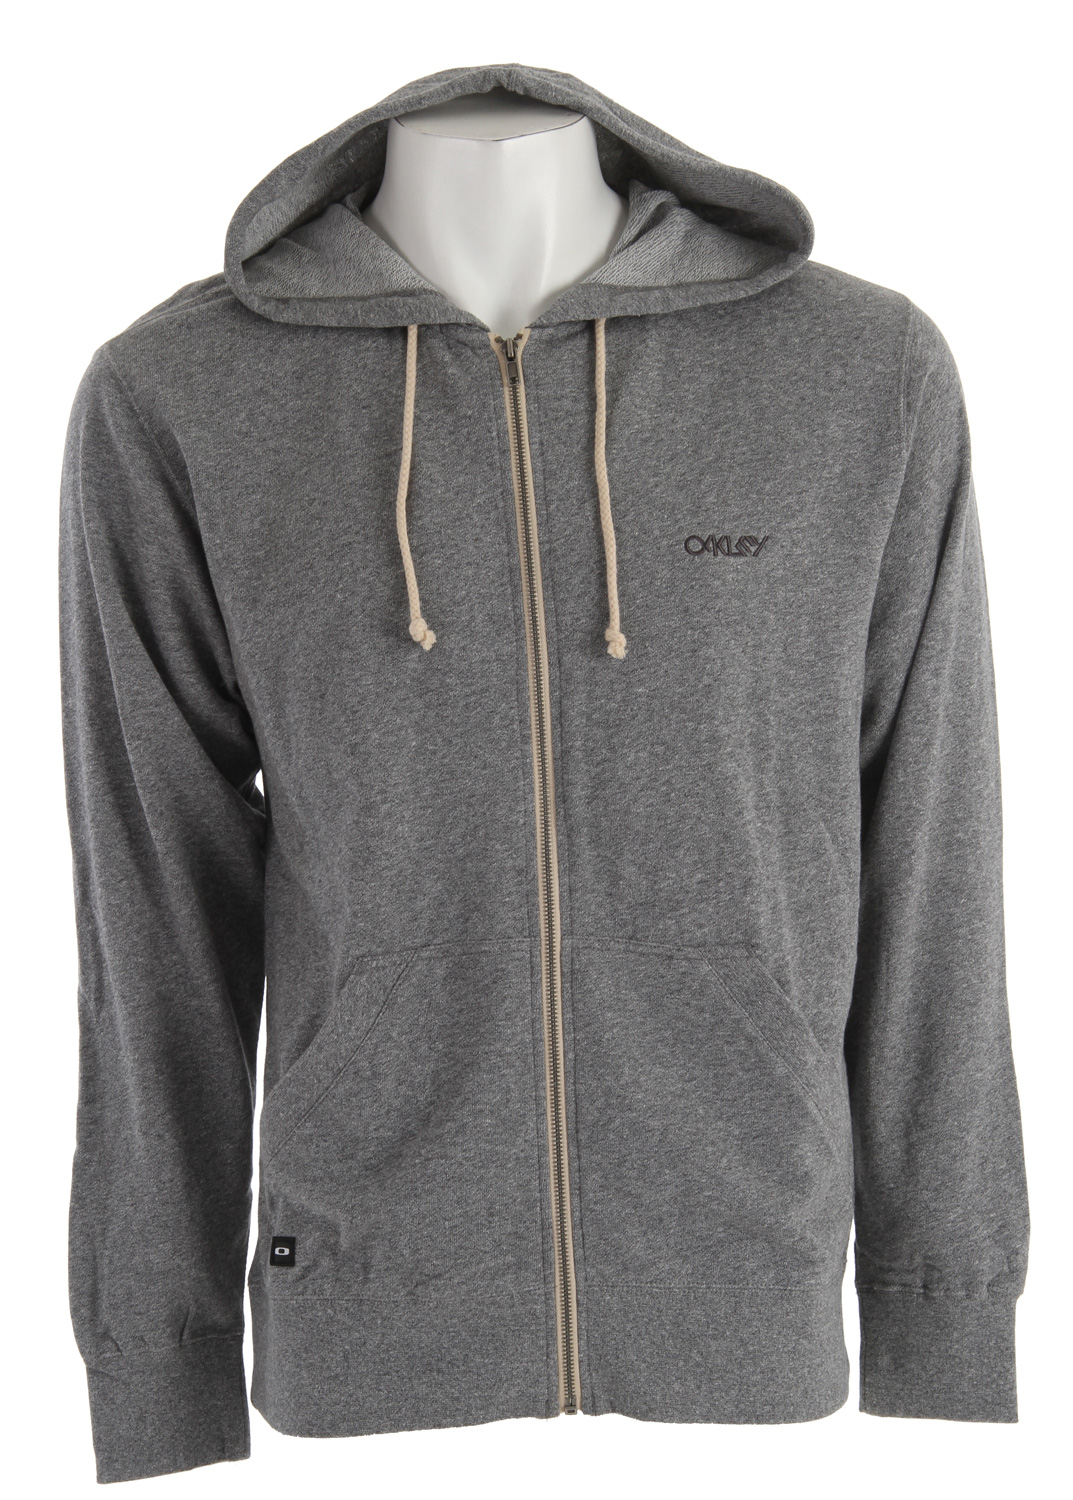 Full zip french terry lightweight heathered hoodie with marsupial hand pockets, chest logo embroidery and icon label. 80% Cotton/20% Polyester - $37.95